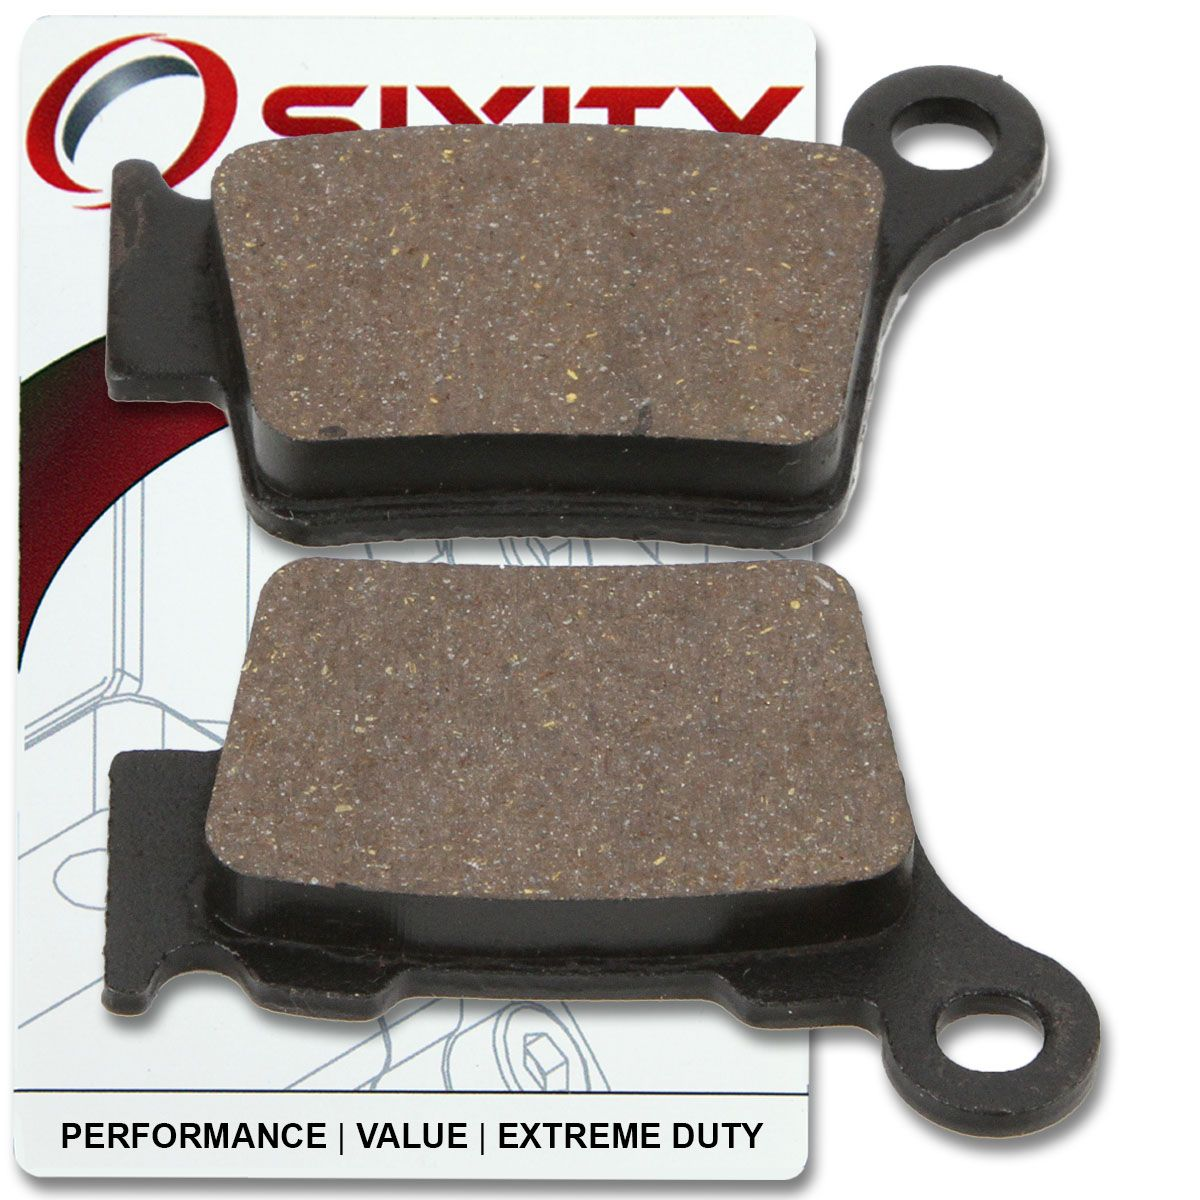 Sixity Front Rear Organic Brake Pads 2006-2009 for KTM 300 XC-W Set Full Kit Complete